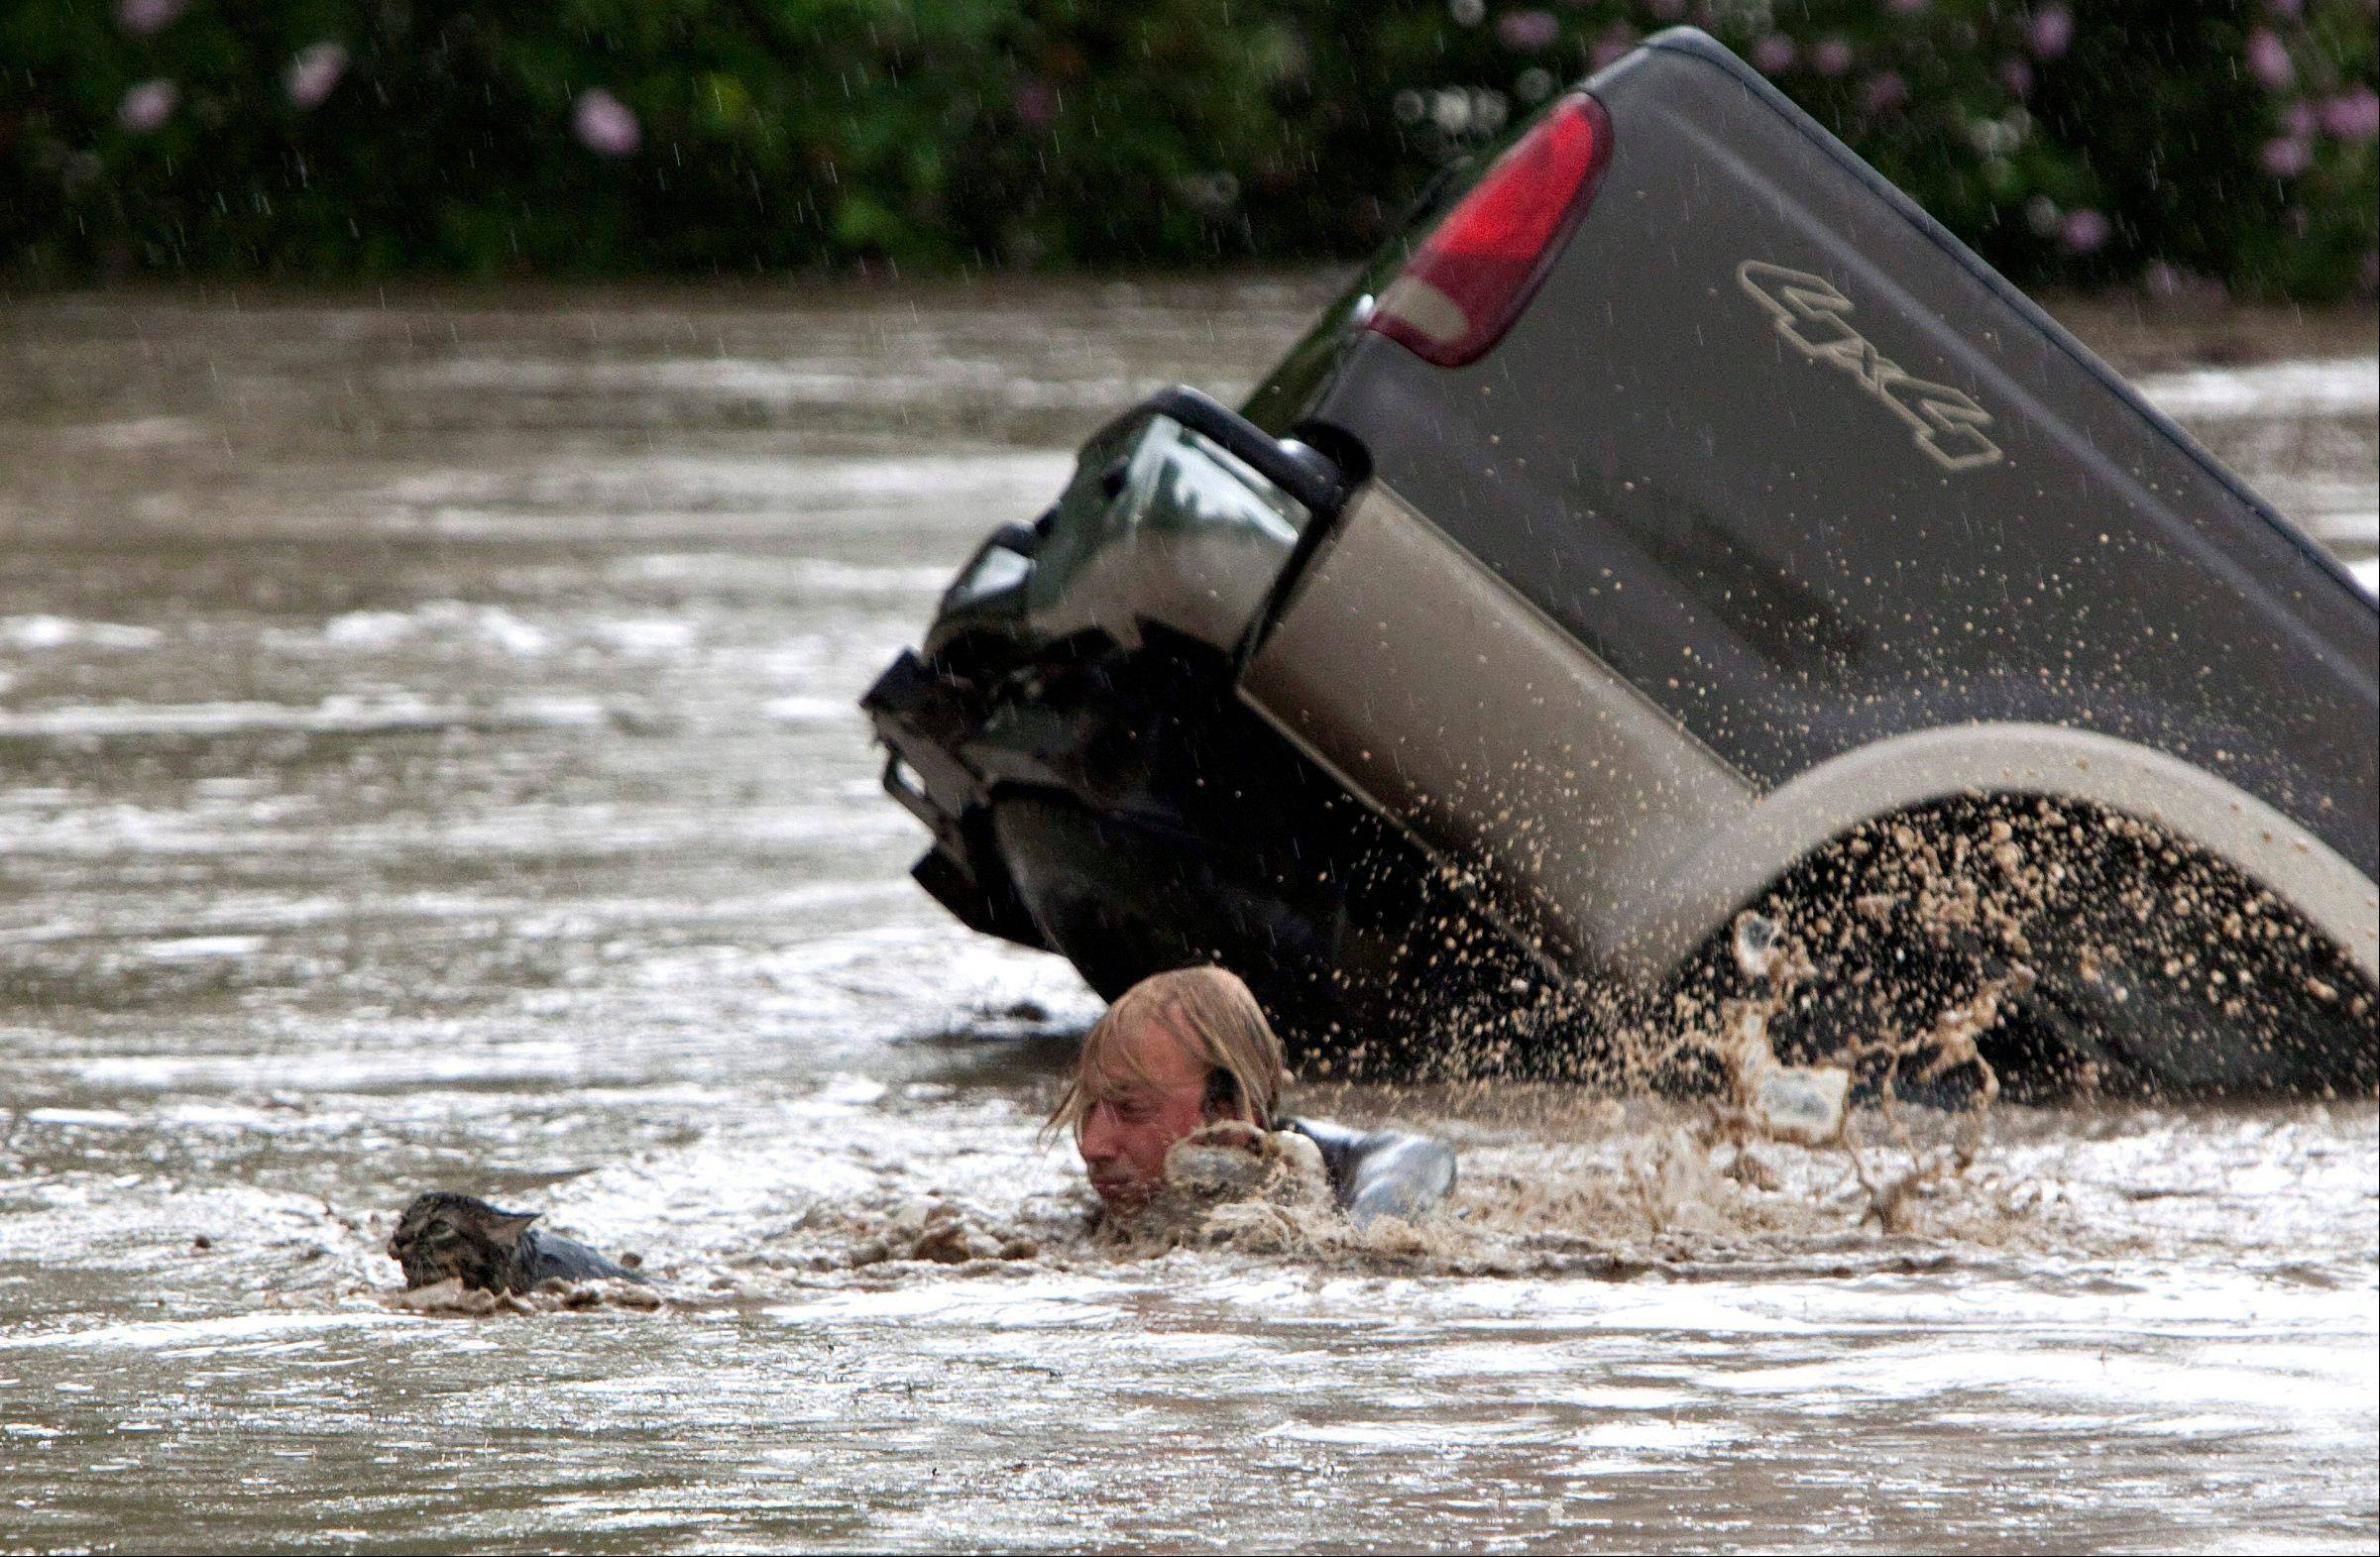 Kevan Yaets swims after his cat Momo to safety as the floodwaters sweep him downstream after submerging his truck in High River, Alberta on Thursday, June 20, 2013 after the Highwood River overflowed its banks. Hundreds of people have been evacuated with volunteers and emergency crews helping to aid stranded residents.